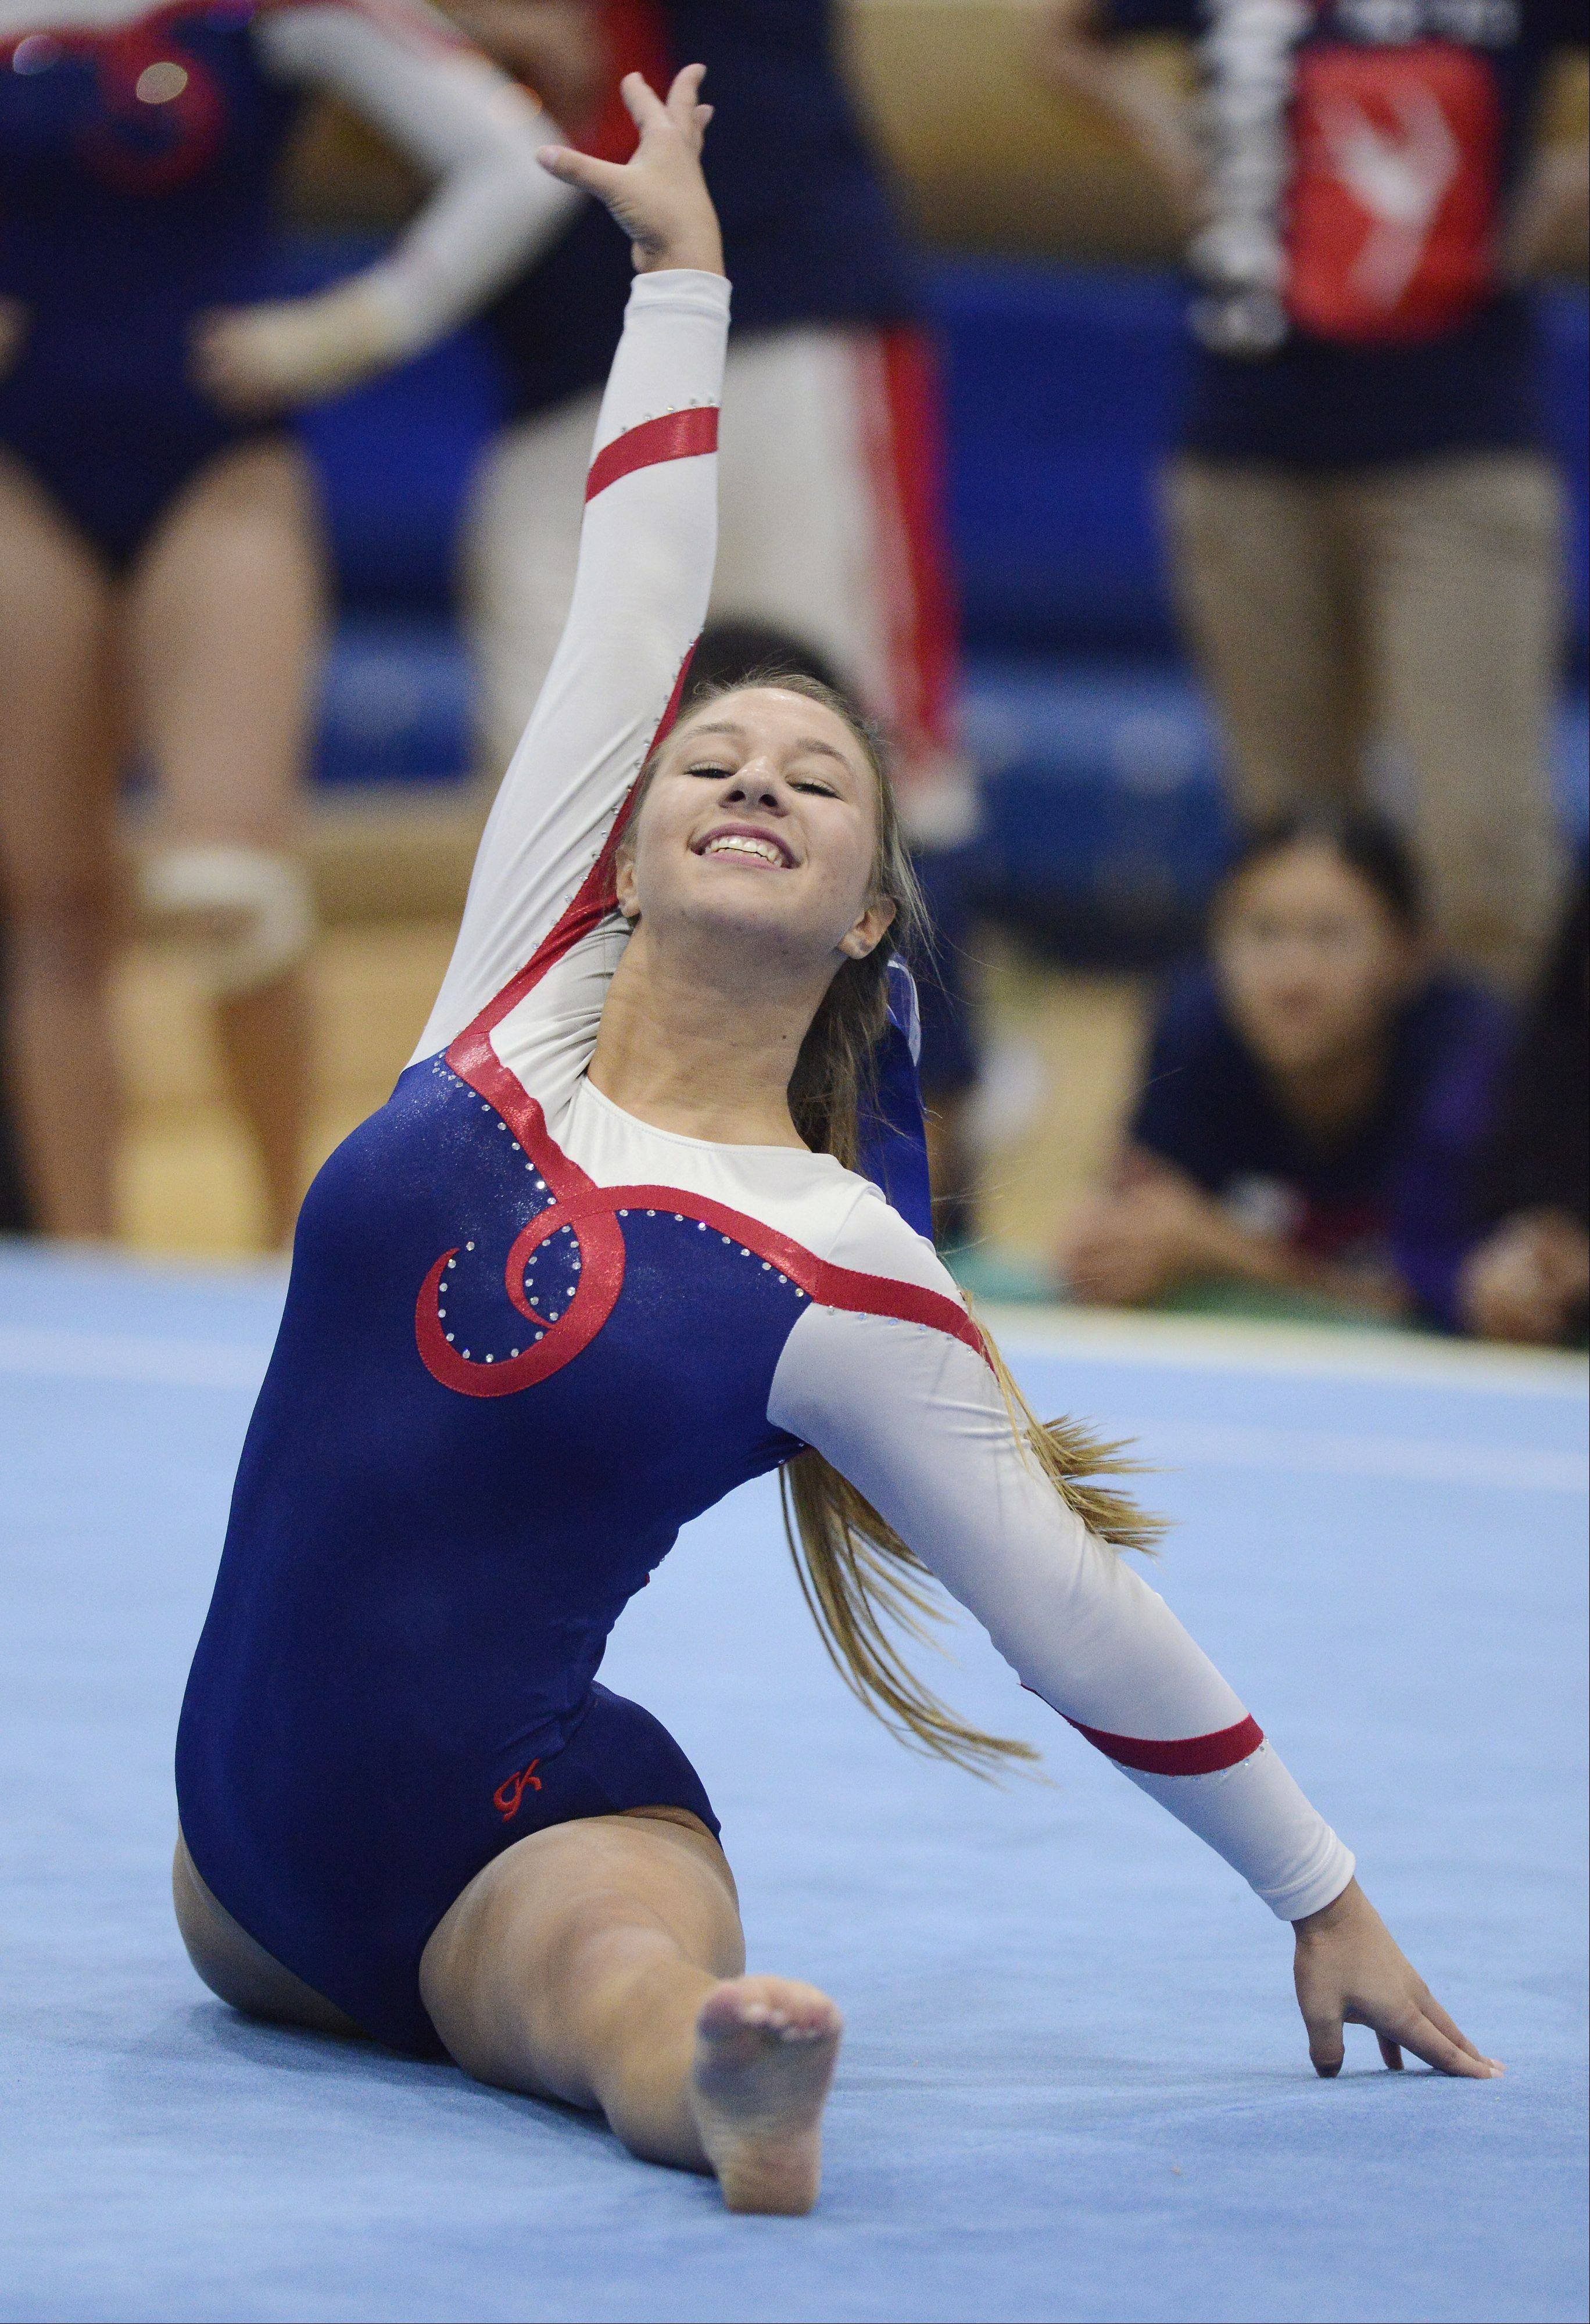 Conant's Sarah Starzynski competes on the floor exercise during Wednesday's meet at Fremd.